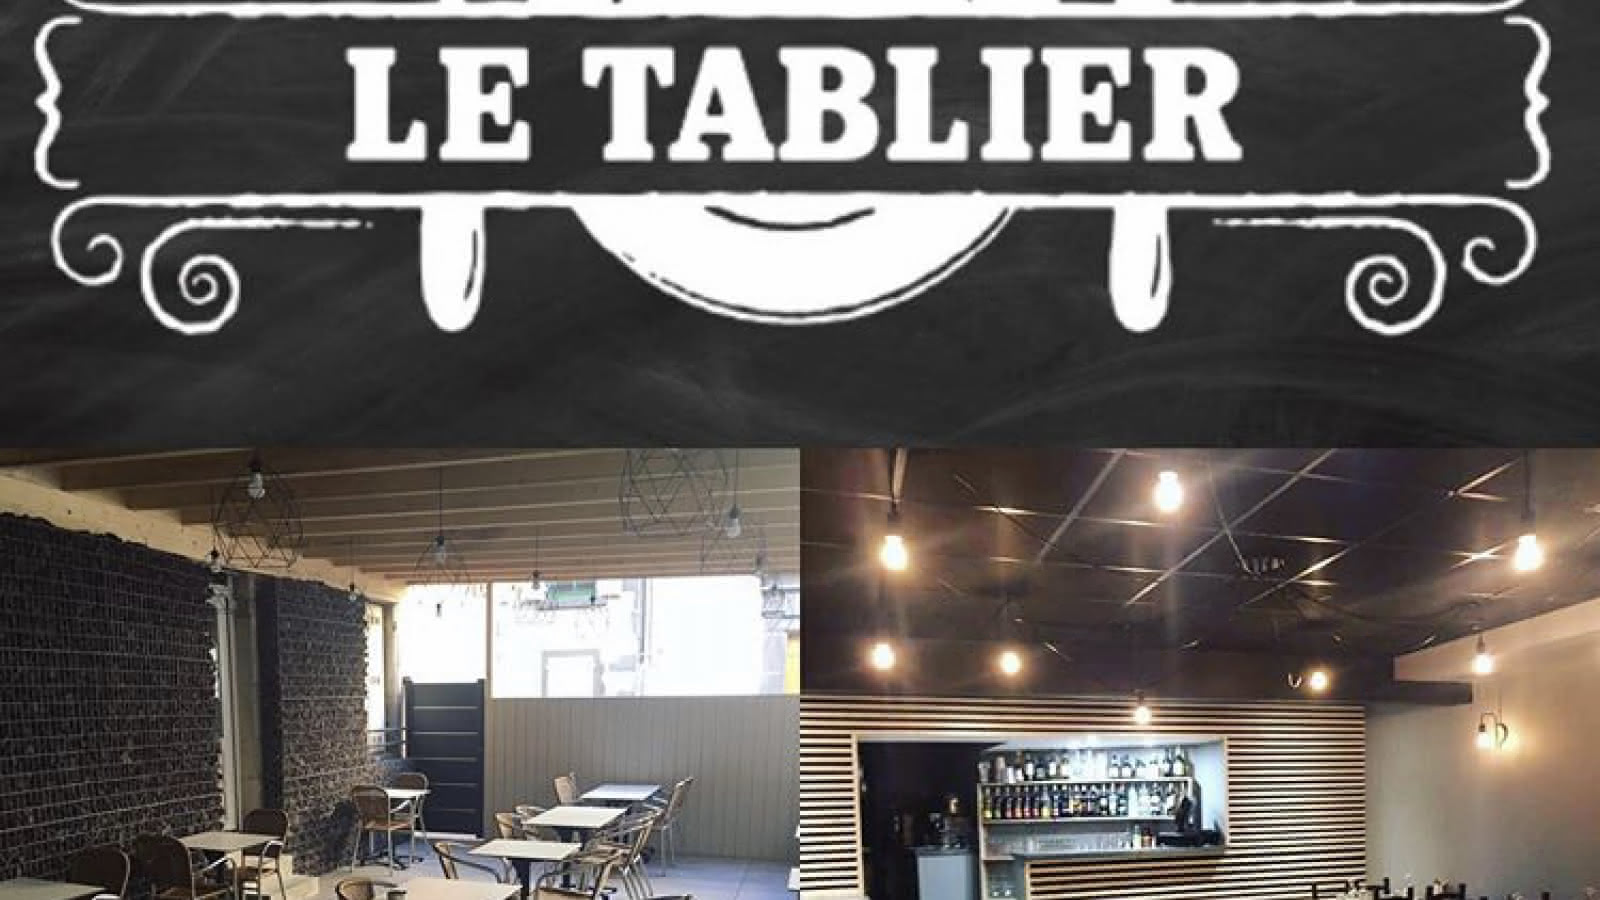 © Restaurant Le Tablier